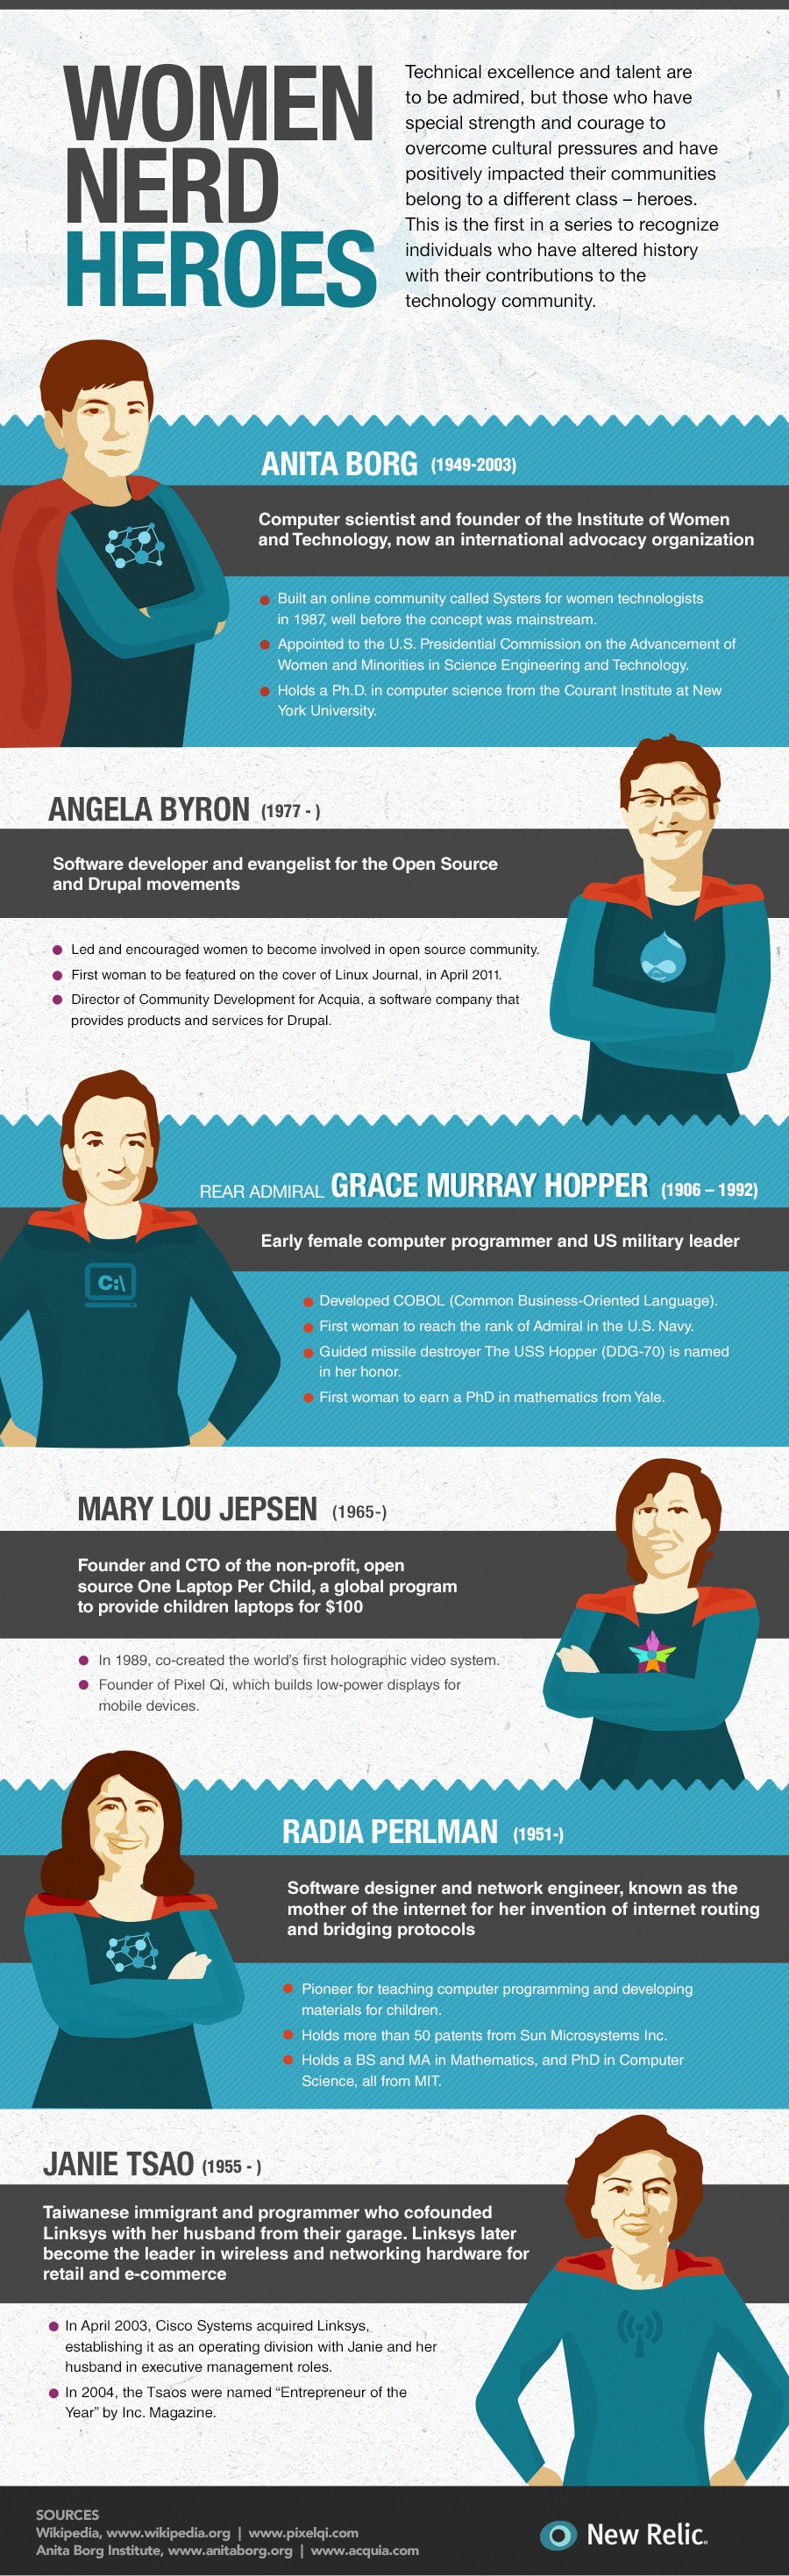 Female Nerds Who Altered The Course Of History [Infographic]